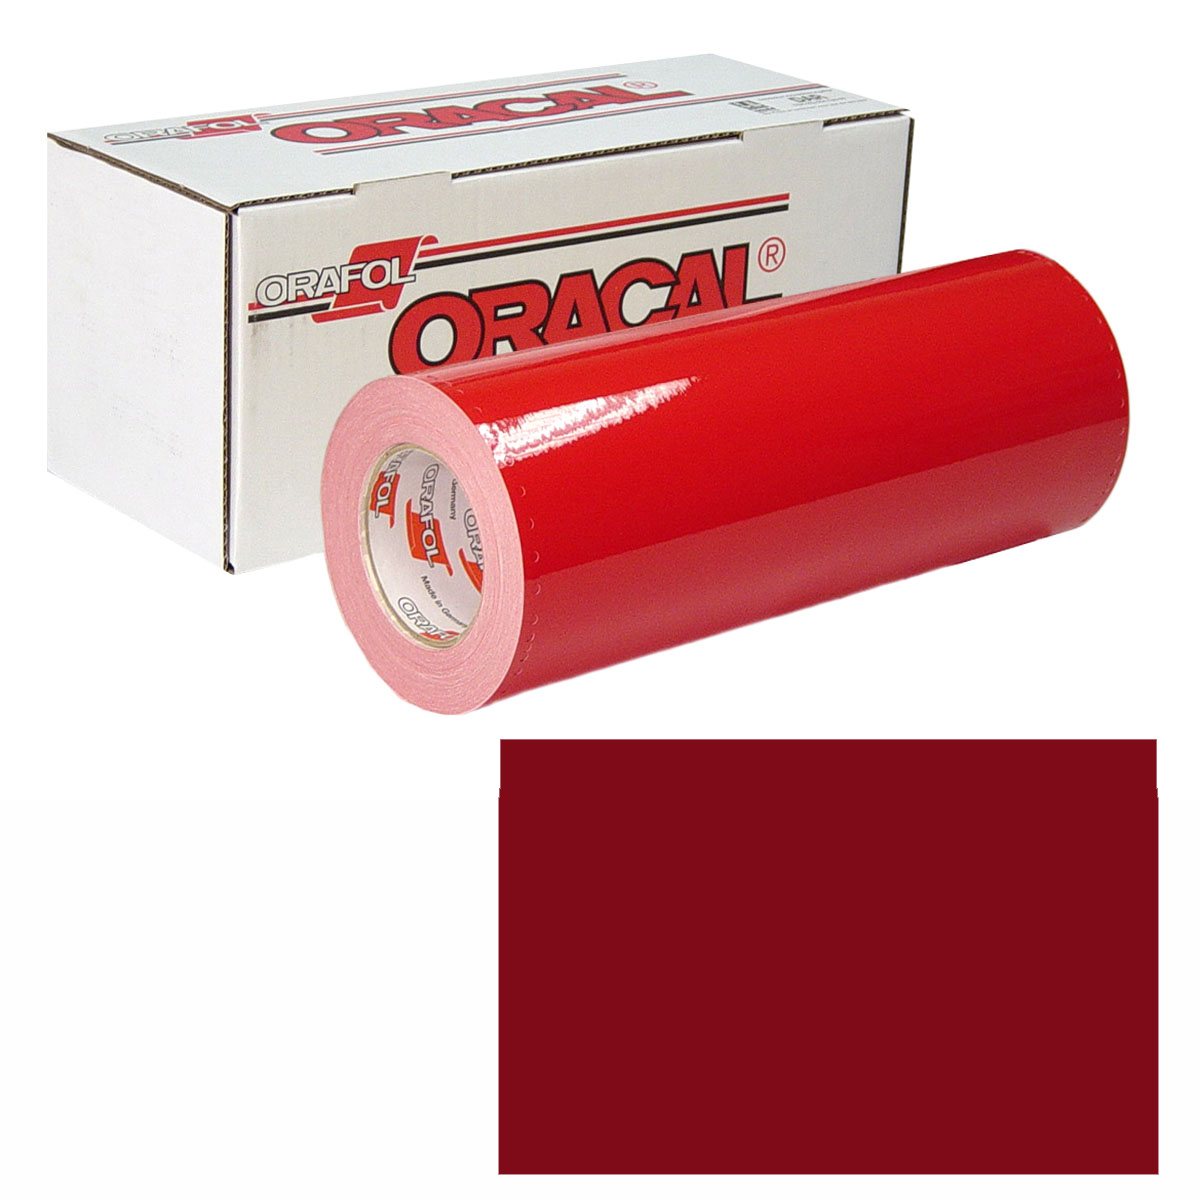 ORACAL 951M Unp 24In X 10Yd 367 Red Metallic